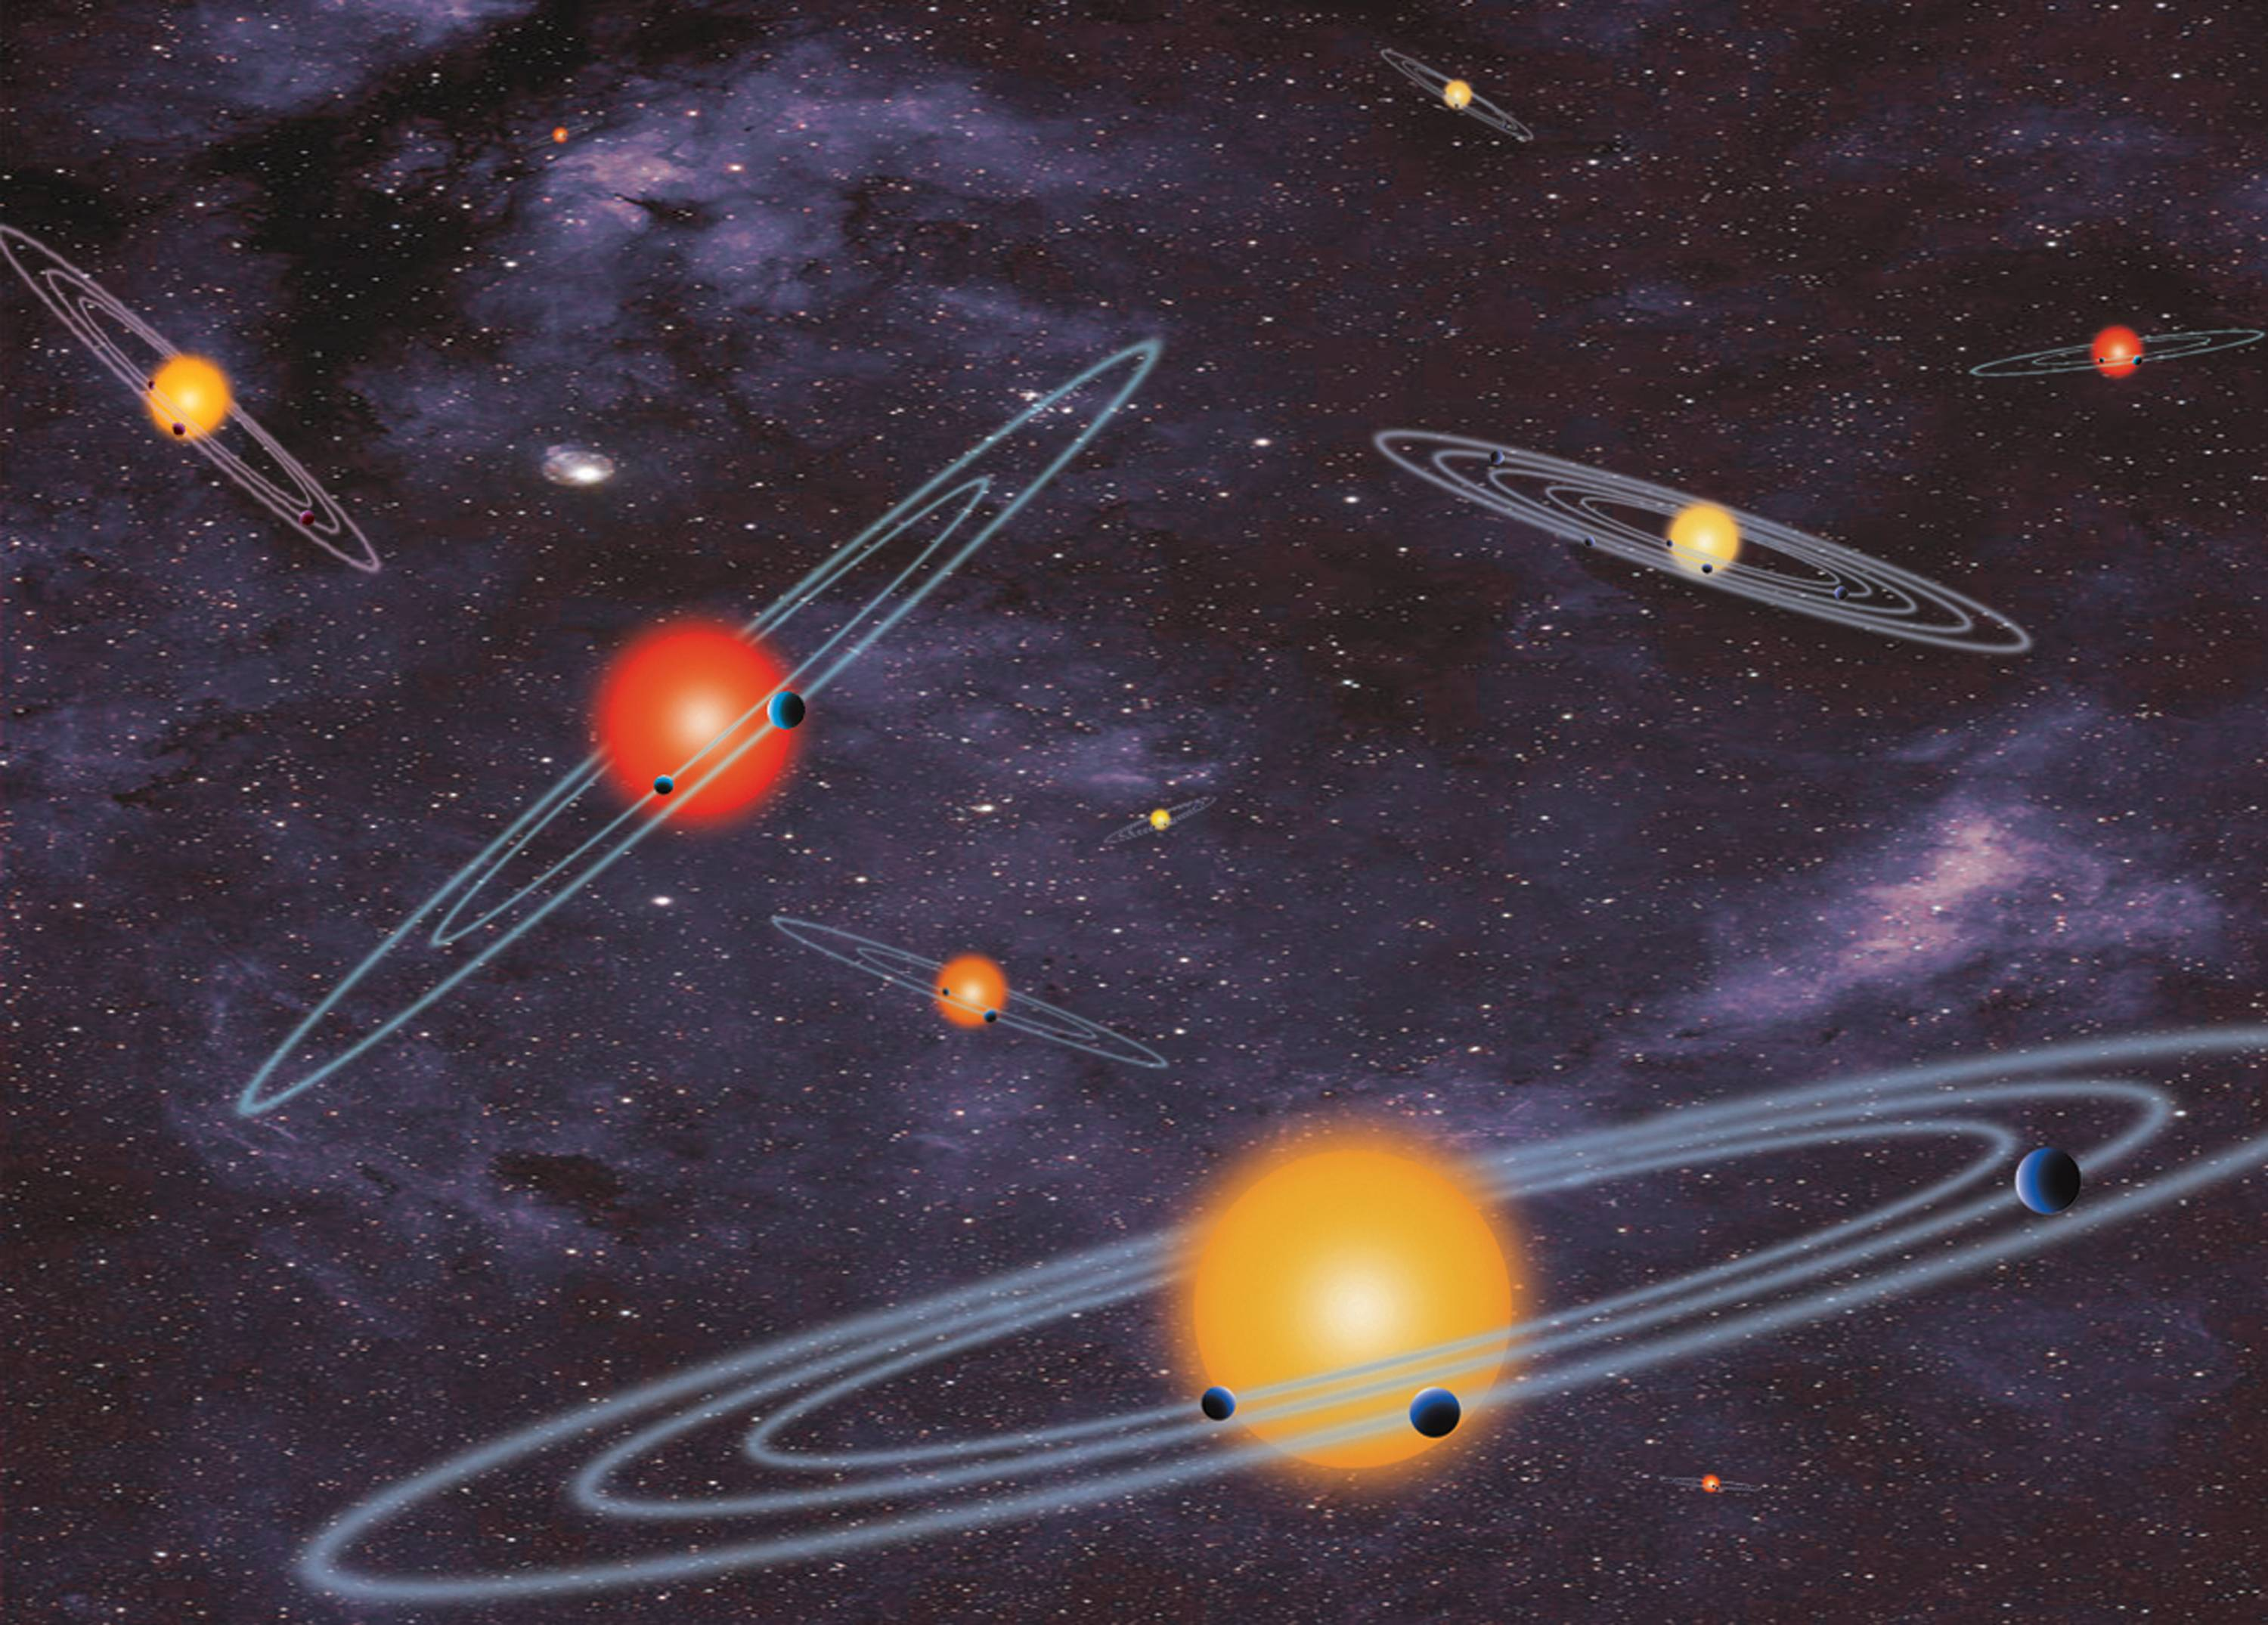 This handout artist conception provided by NASA depicts multiple-transiting planet systems, which are stars with more than one planet. The planets eclipse or transit their host star from the vantage point of the observer. This angle is called edge-on. Our galaxy is looking far more crowded as NASA Wednesday confirmed a bonanza of 715 newly discovered planets circling stars other than our sun.